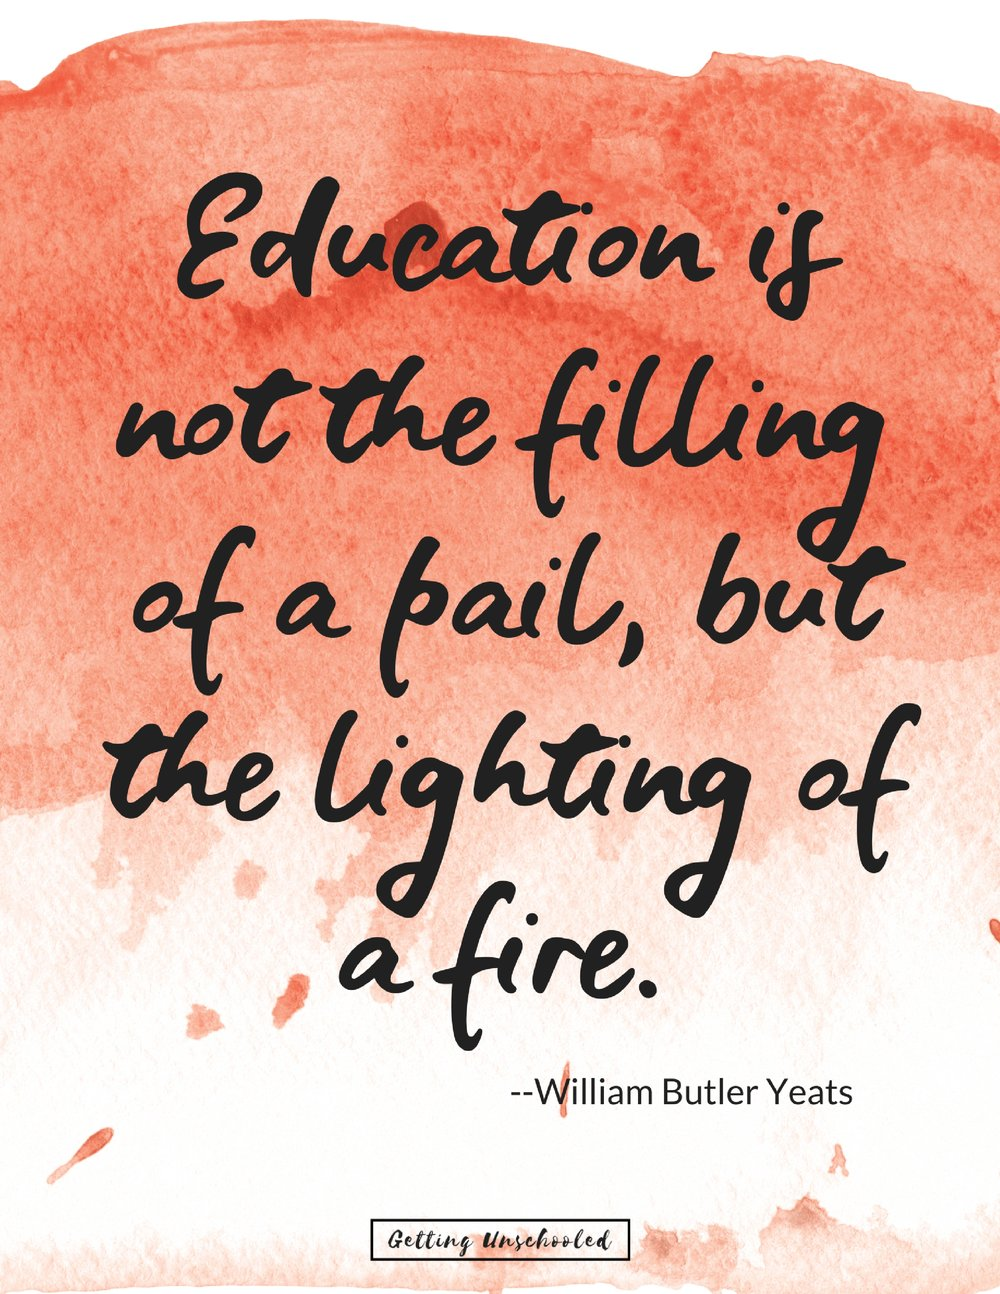 I started creating graphics of my favorite inspirational quotes on homeschooling and beyond :) I love this Yeats quote so much and it is fits my unschooling philosophy.